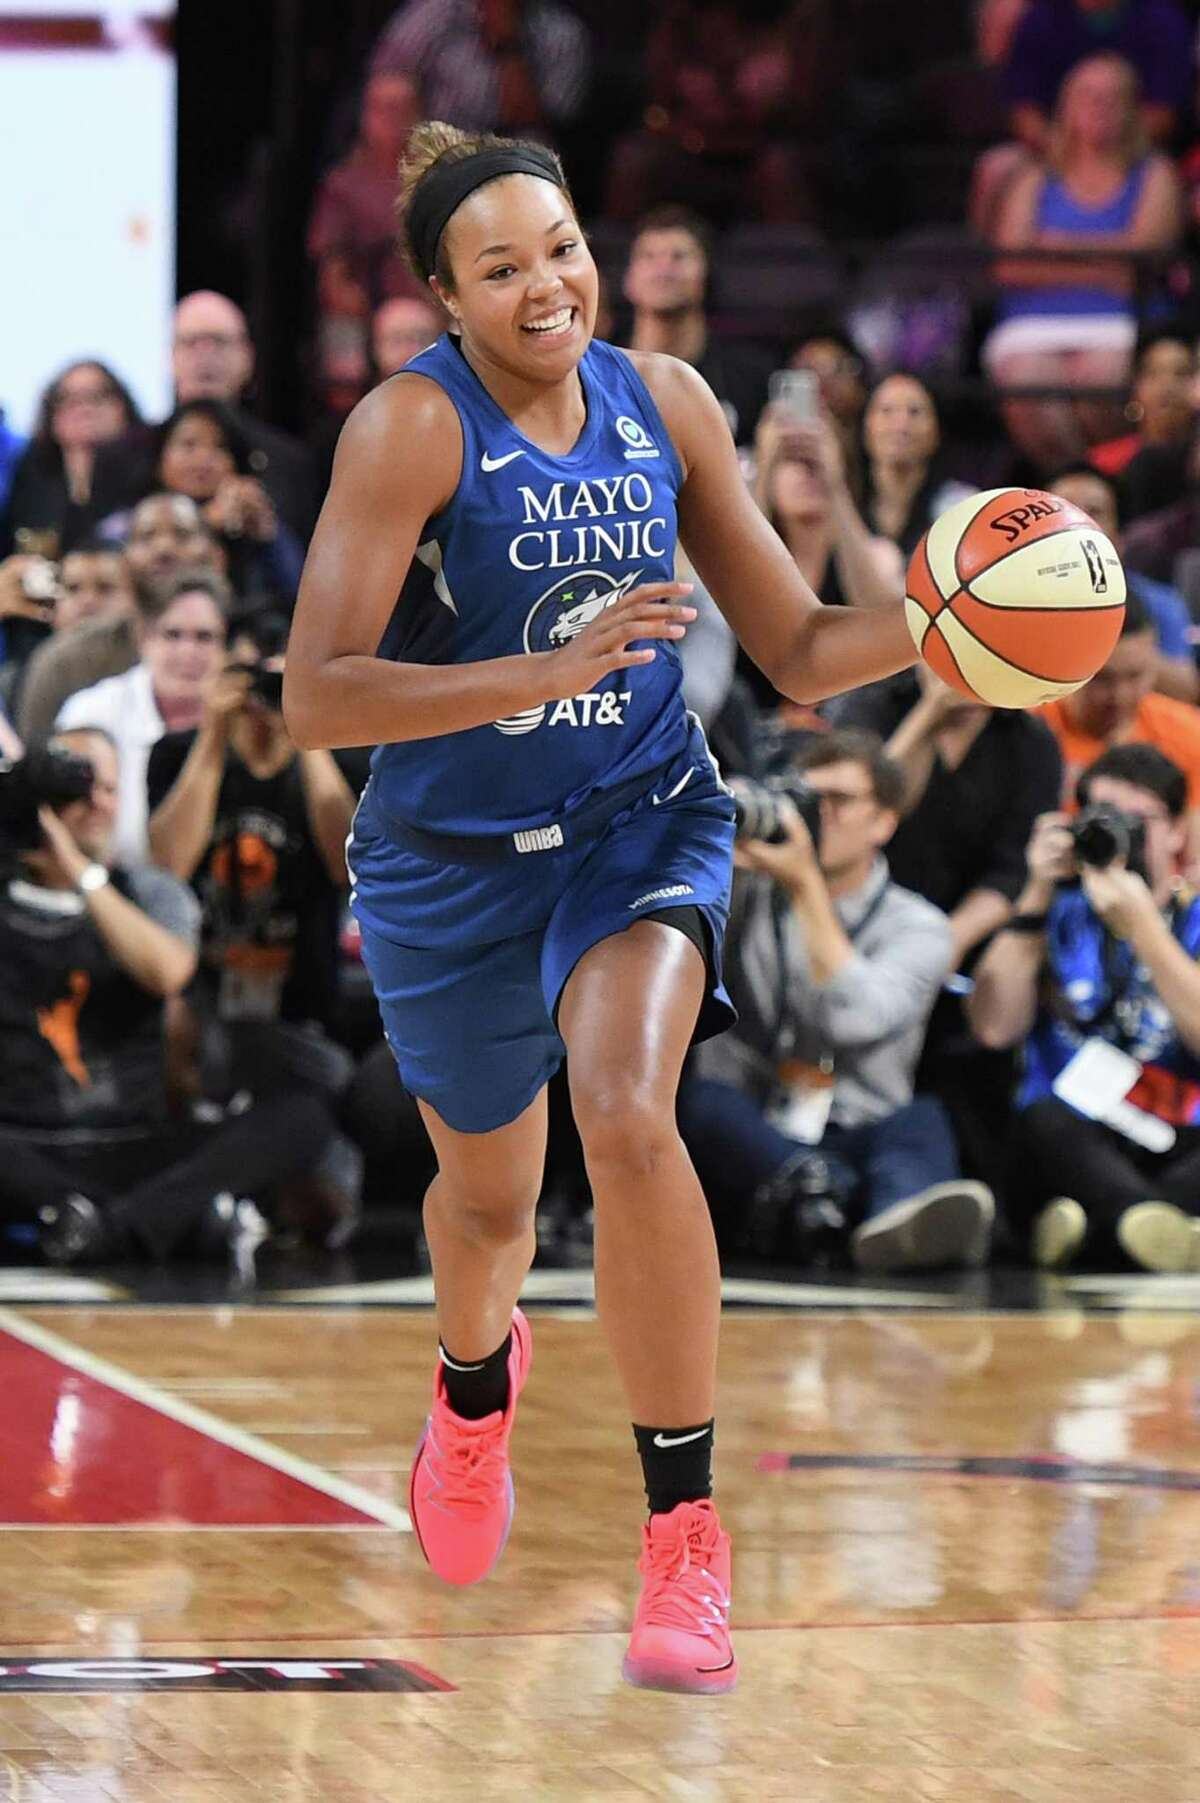 LAS VEGAS, NEVADA - JULY 26: Napheesa Collier of the Minnesota Lynx competes during the Skills Challenge of the WNBA All-Star Friday Night at the Mandalay Bay Events Center on July 26, 2019 in Las Vegas, Nevada. NOTE TO USER: User expressly acknowledges and agrees that, by downloading and or using this photograph, User is consenting to the terms and conditions of the Getty Images License Agreement. (Photo by Ethan Miller/Getty Images)